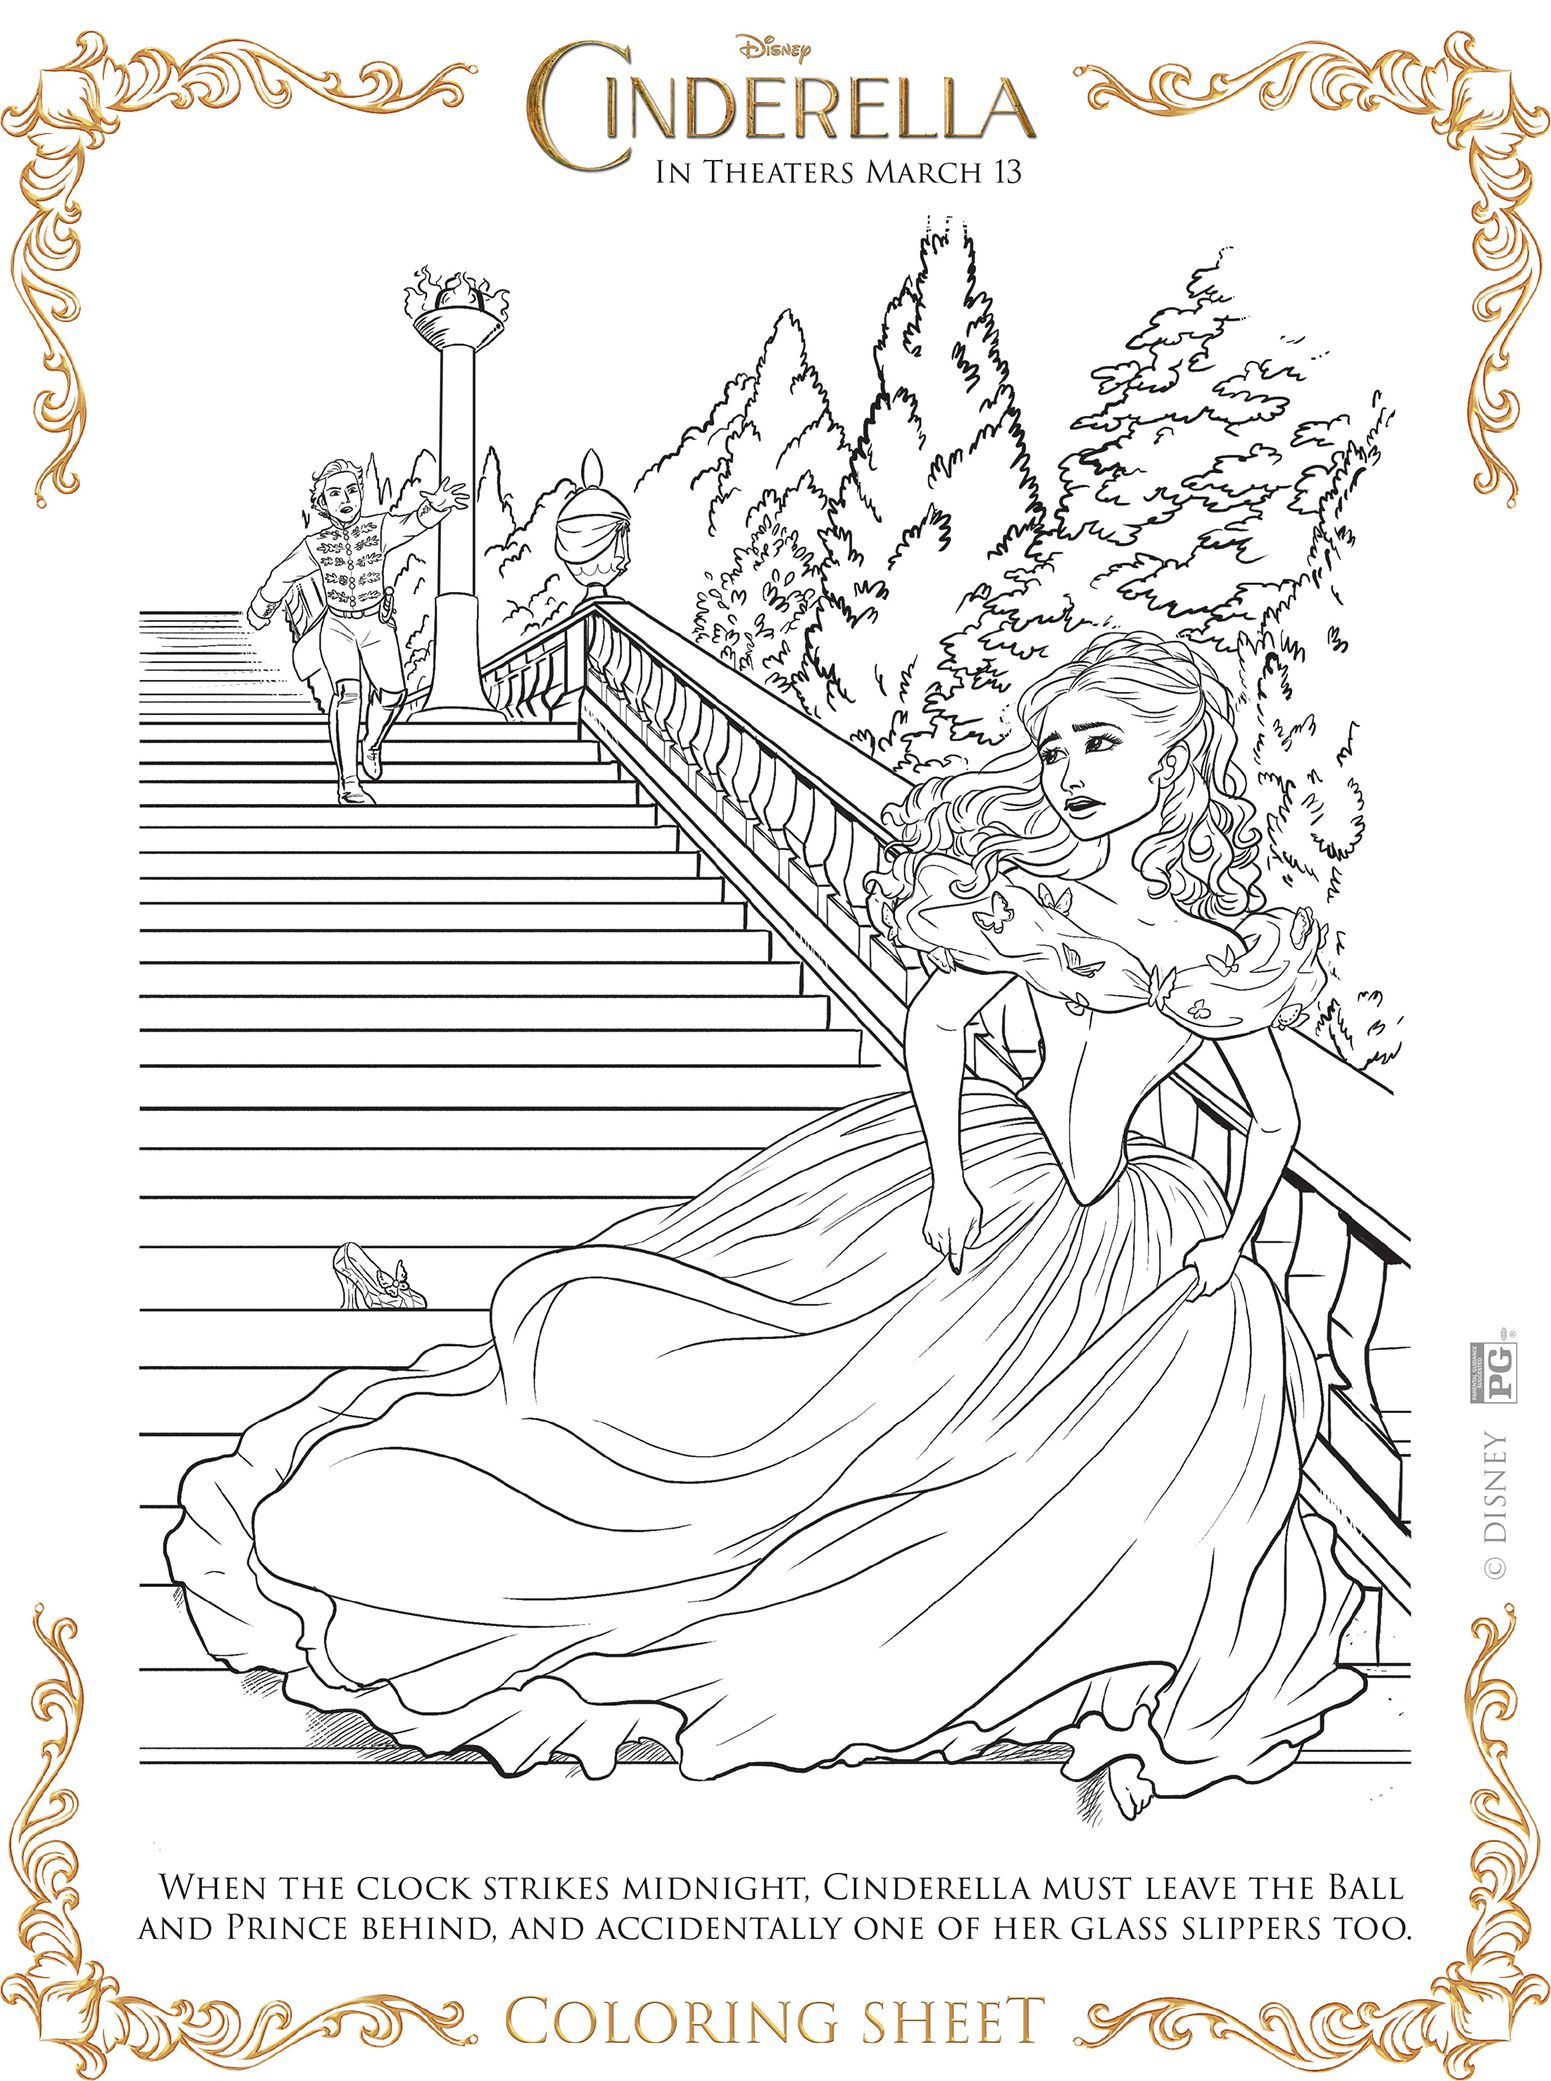 Free Printable Coloring Pages From The New Disney Live Action Cinderella Movie